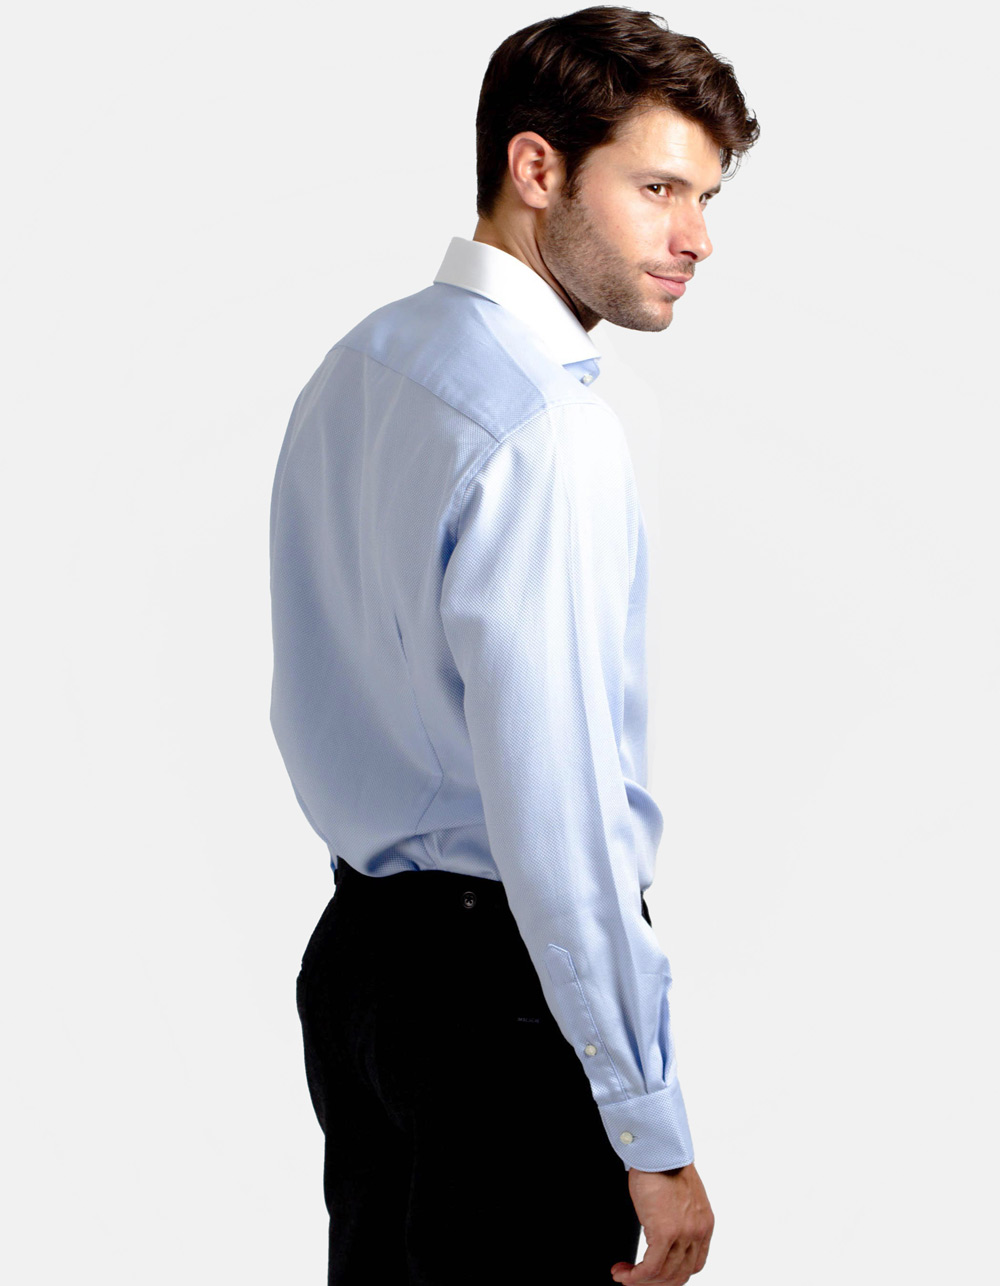 Blue Royal Oxford shirt with white collar - Backside